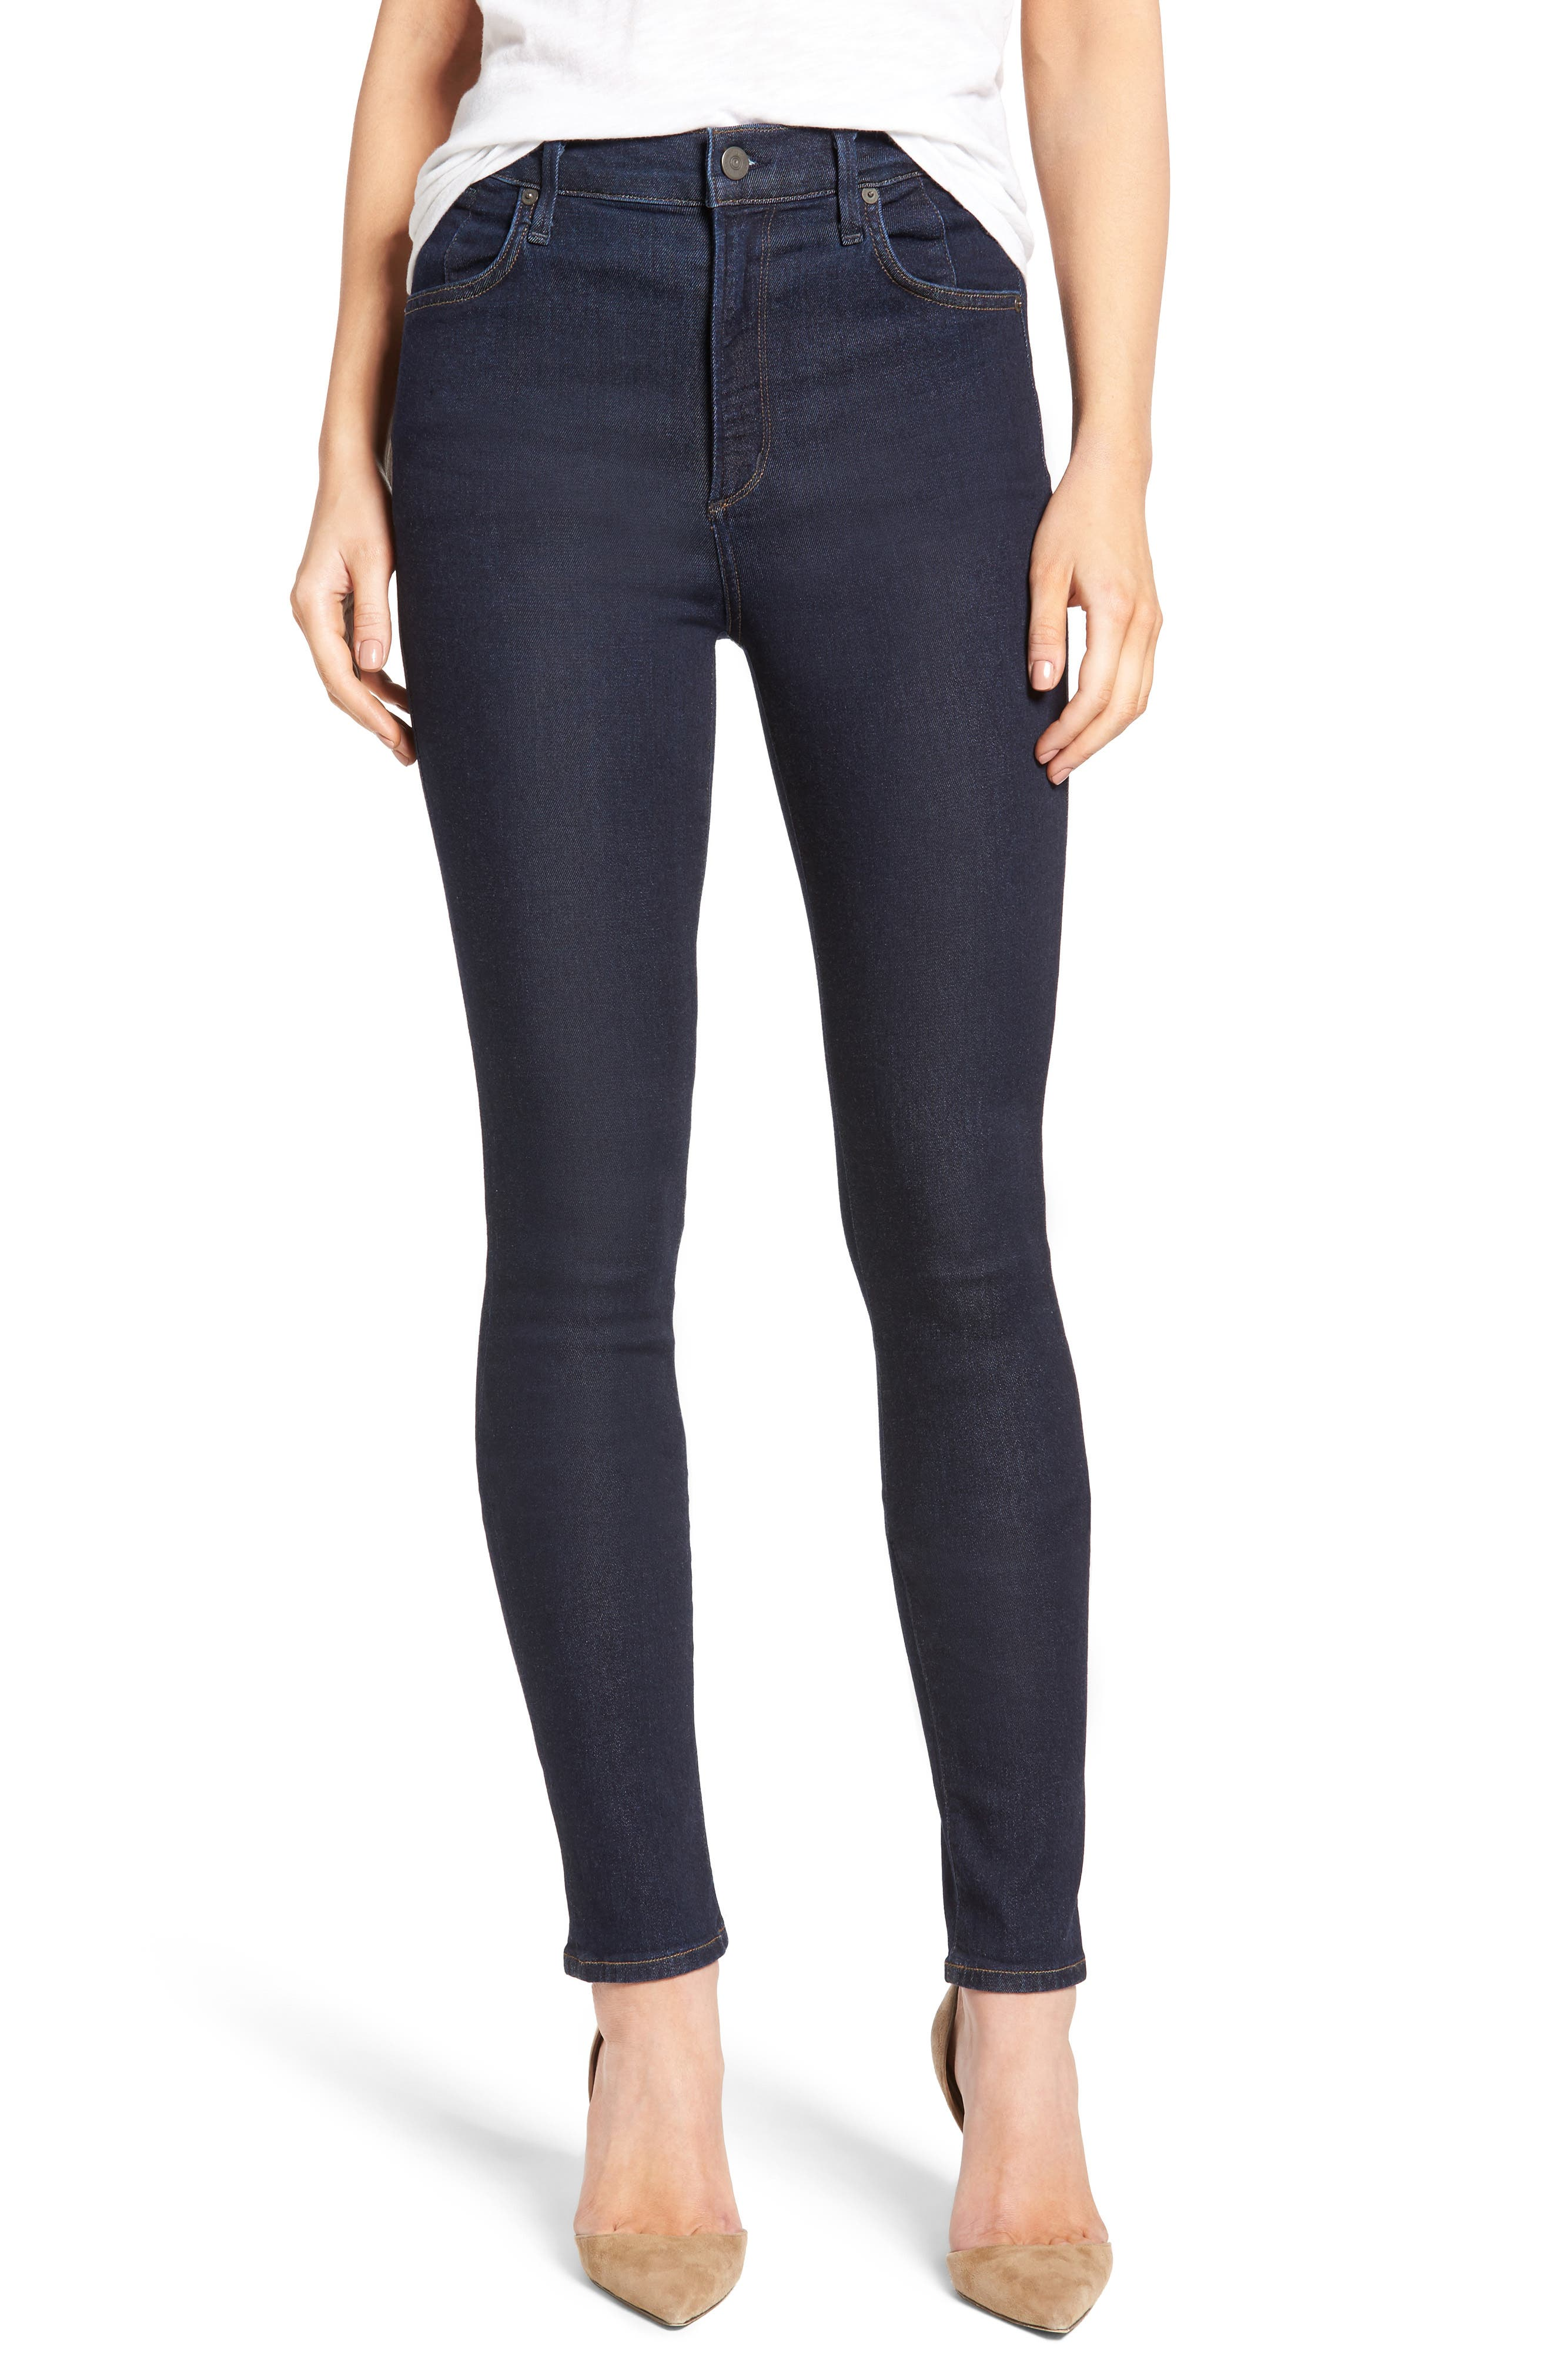 Main Image - Citizens of Humanity Carlie High Waist Skinny Jeans (Ozone Rinse)